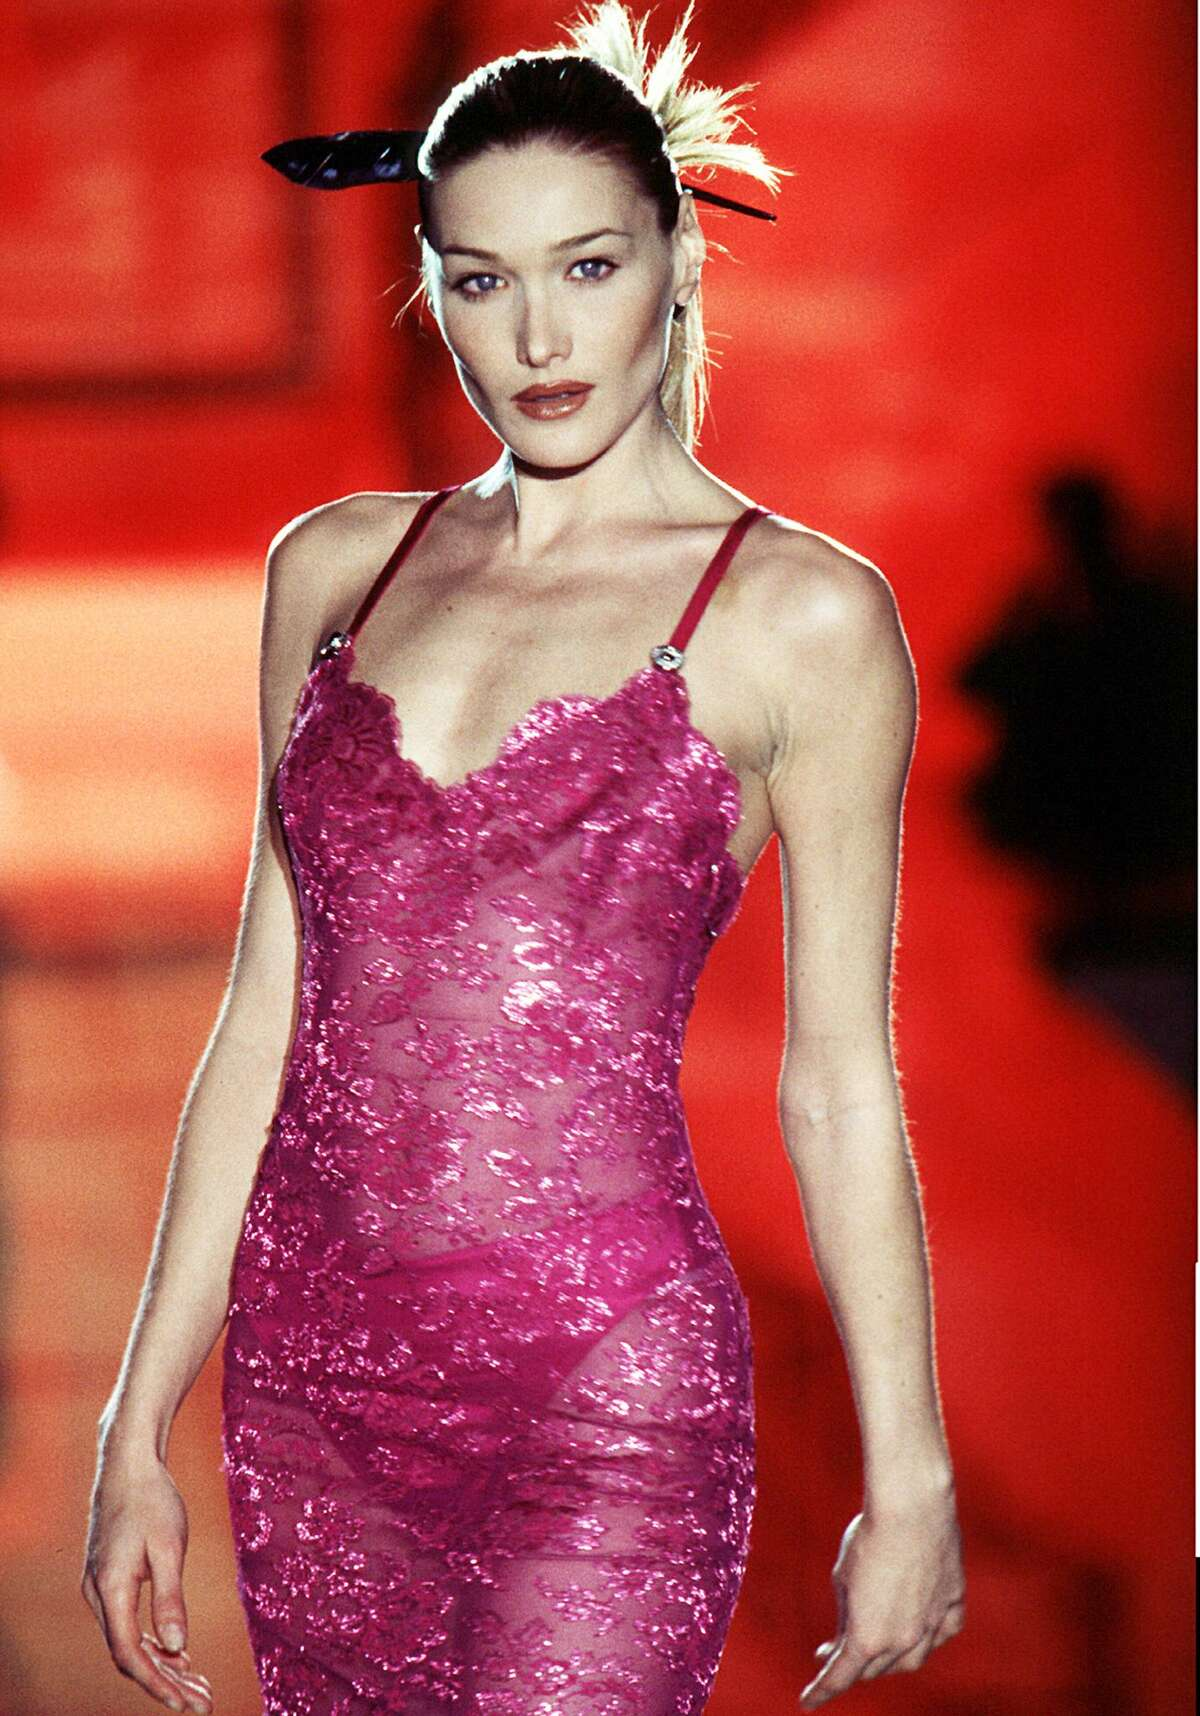 PARIS, FRANCE - JANUARY 18: Model Carla Bruni walks the runway during the Versace Haute Couture Spring/Summer show as part of the Paris Haute Couture week on January 18, 1996 in Paris,France. (Photo by Victor VIRGILE/Gamma-Rapho via Getty Images)